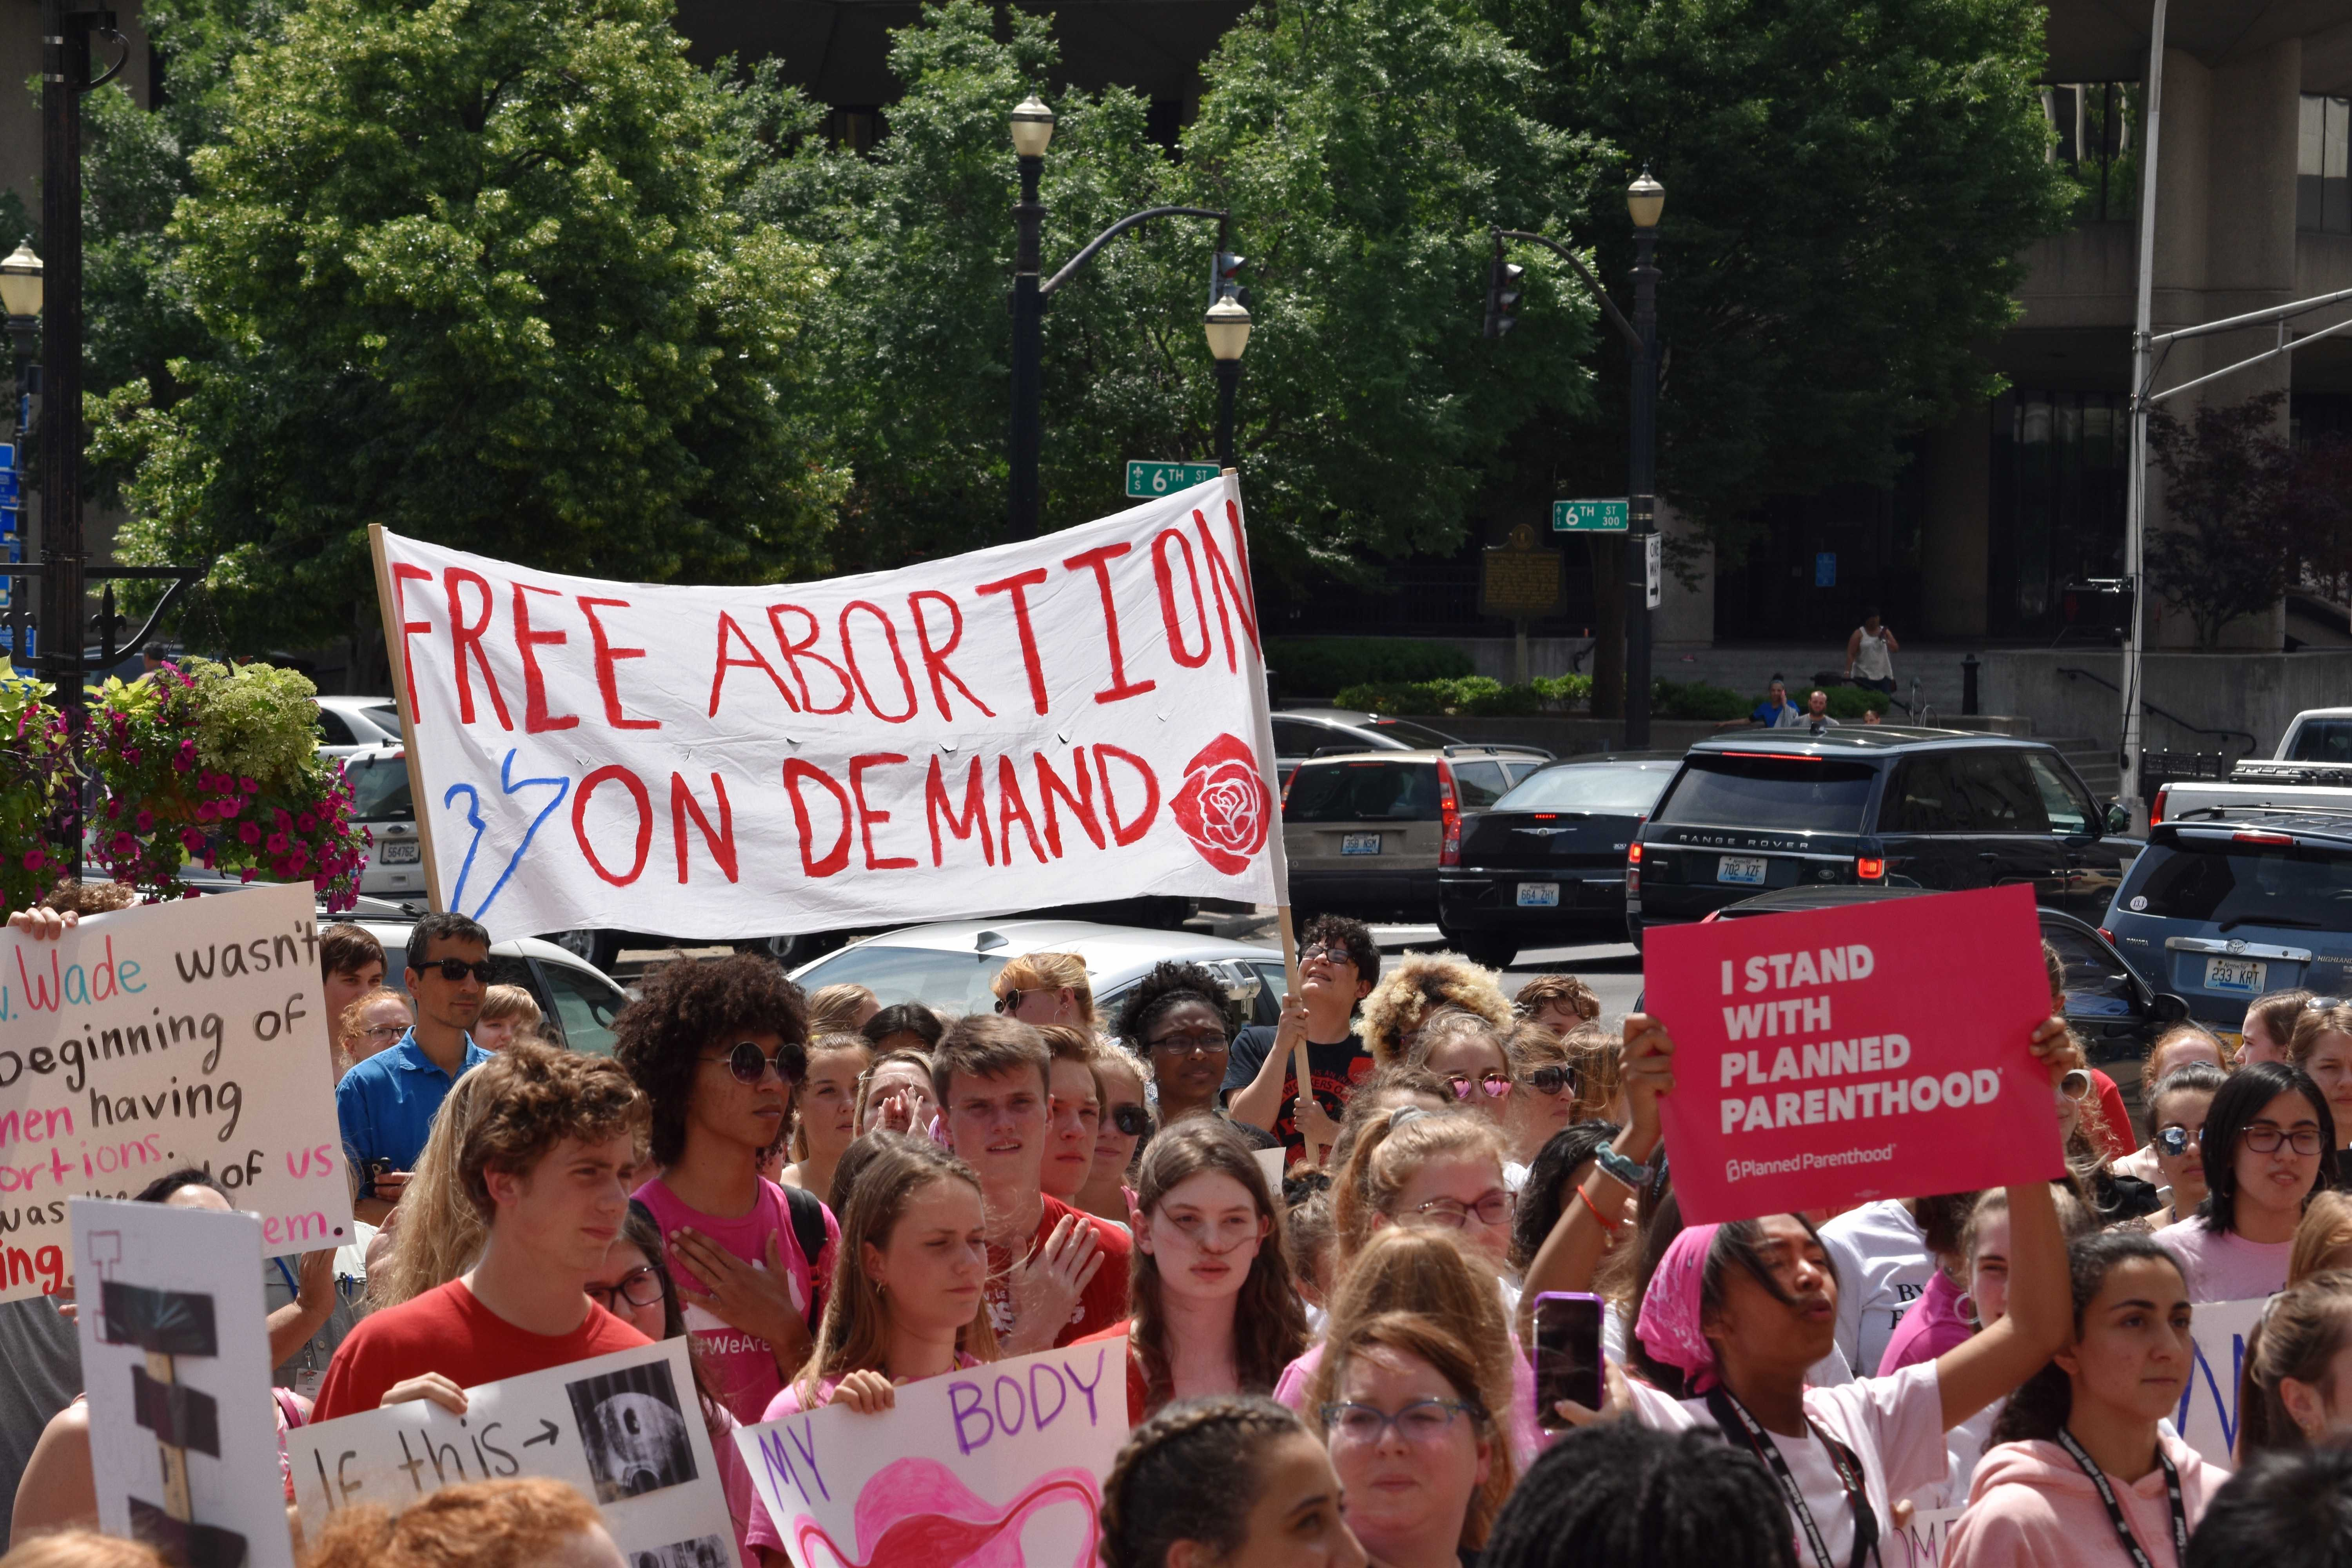 Women's rights rally illuminates a need for intersectionality in reproductive healthcare